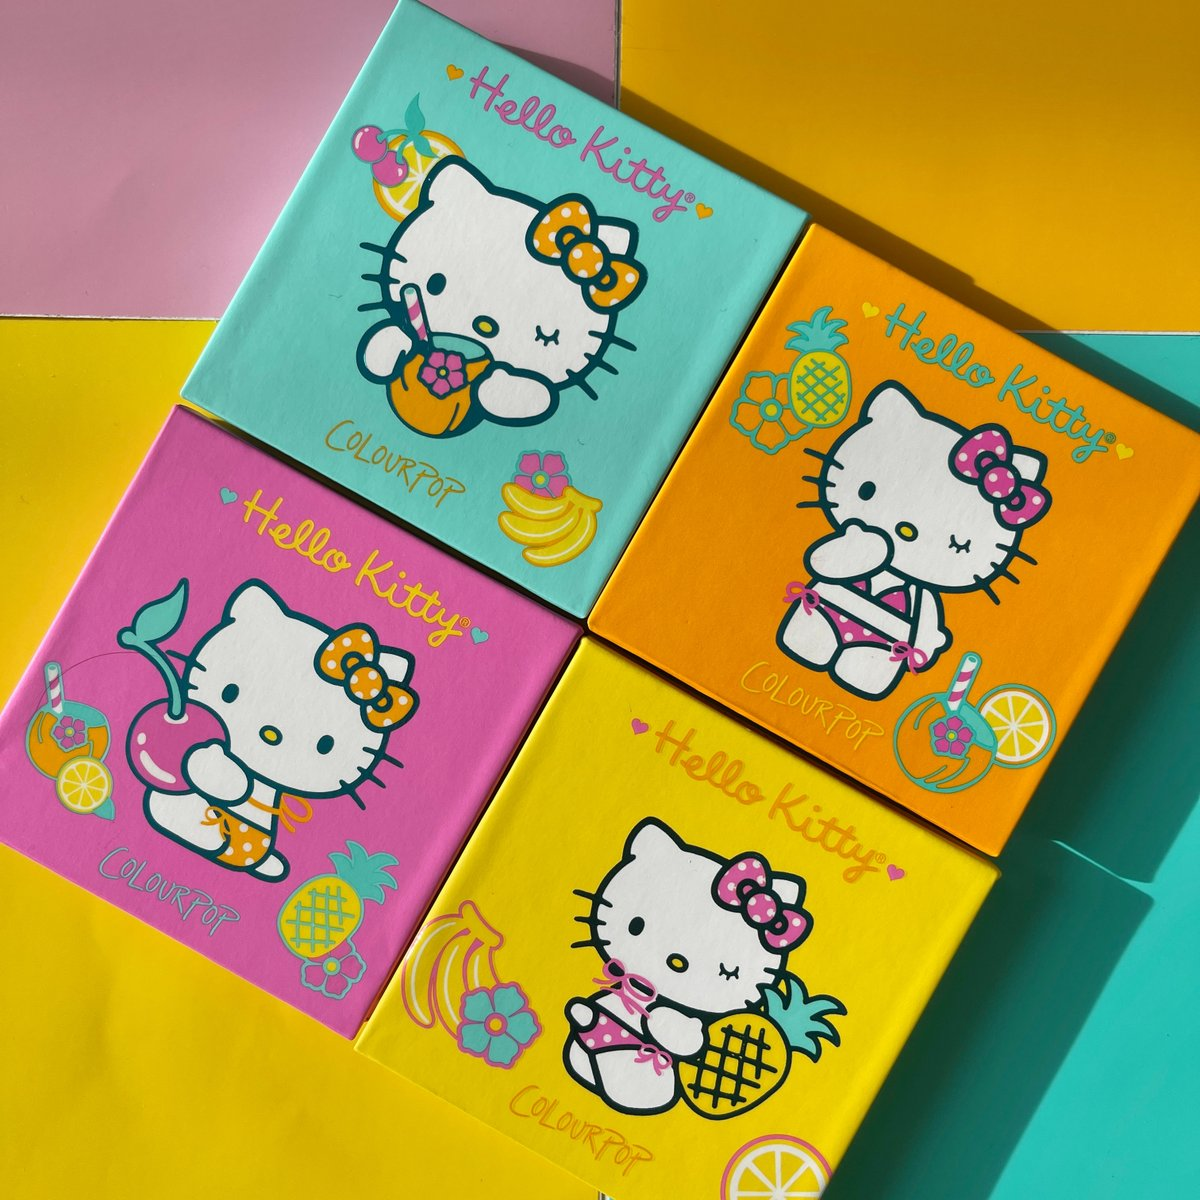 Hello CUTE packaging! 😍🍍🌺  Shop the @hellokitty Tropical Escape Collection NOW on https://t.co/5C9dbszKrN  IG | @lapetitechicmommy #HelloKittyXColourPop https://t.co/vqOc4g4LXV